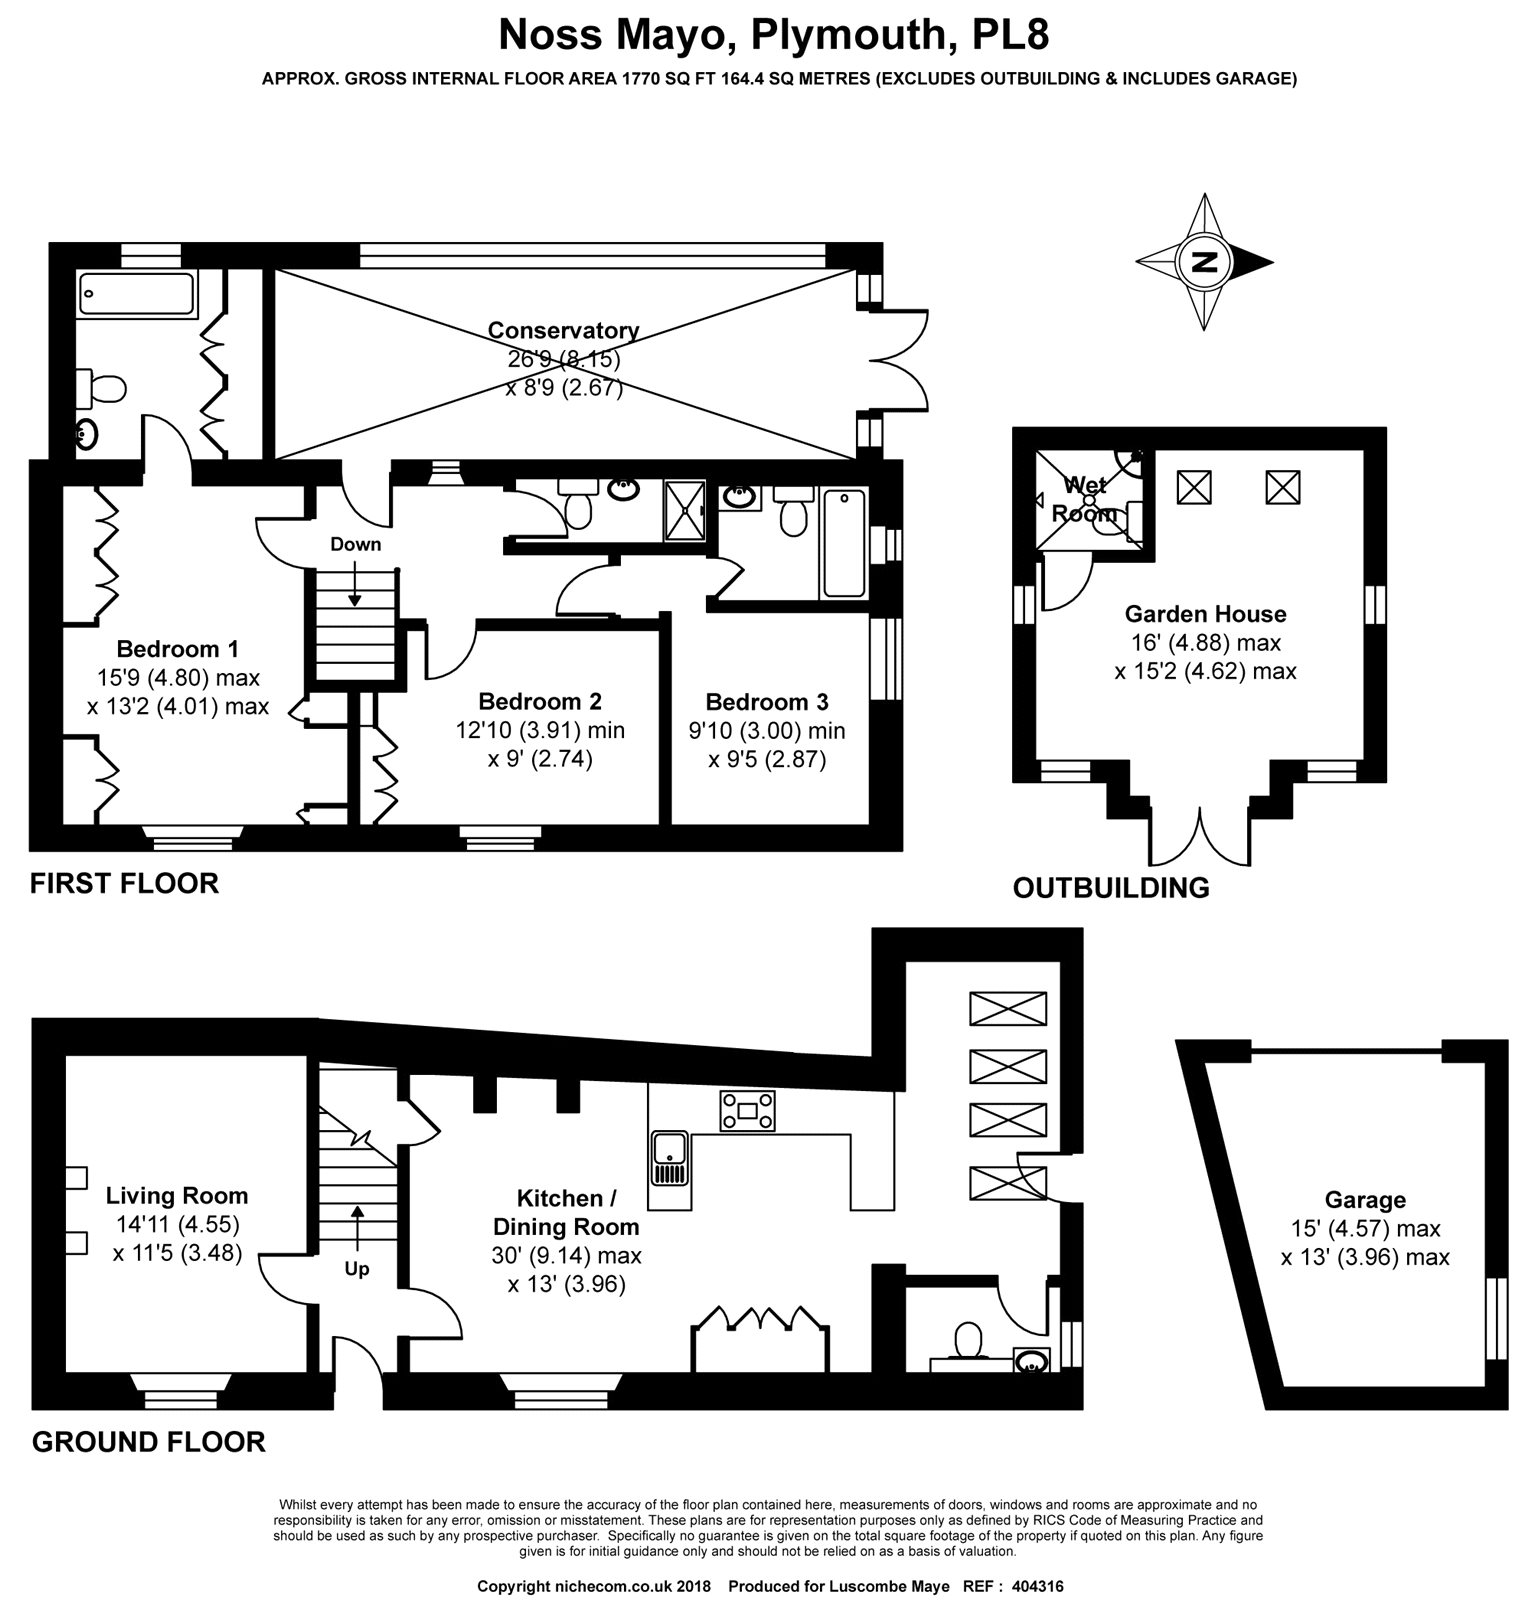 foundry lane noss mayo plymouth pl8 a luxury home for